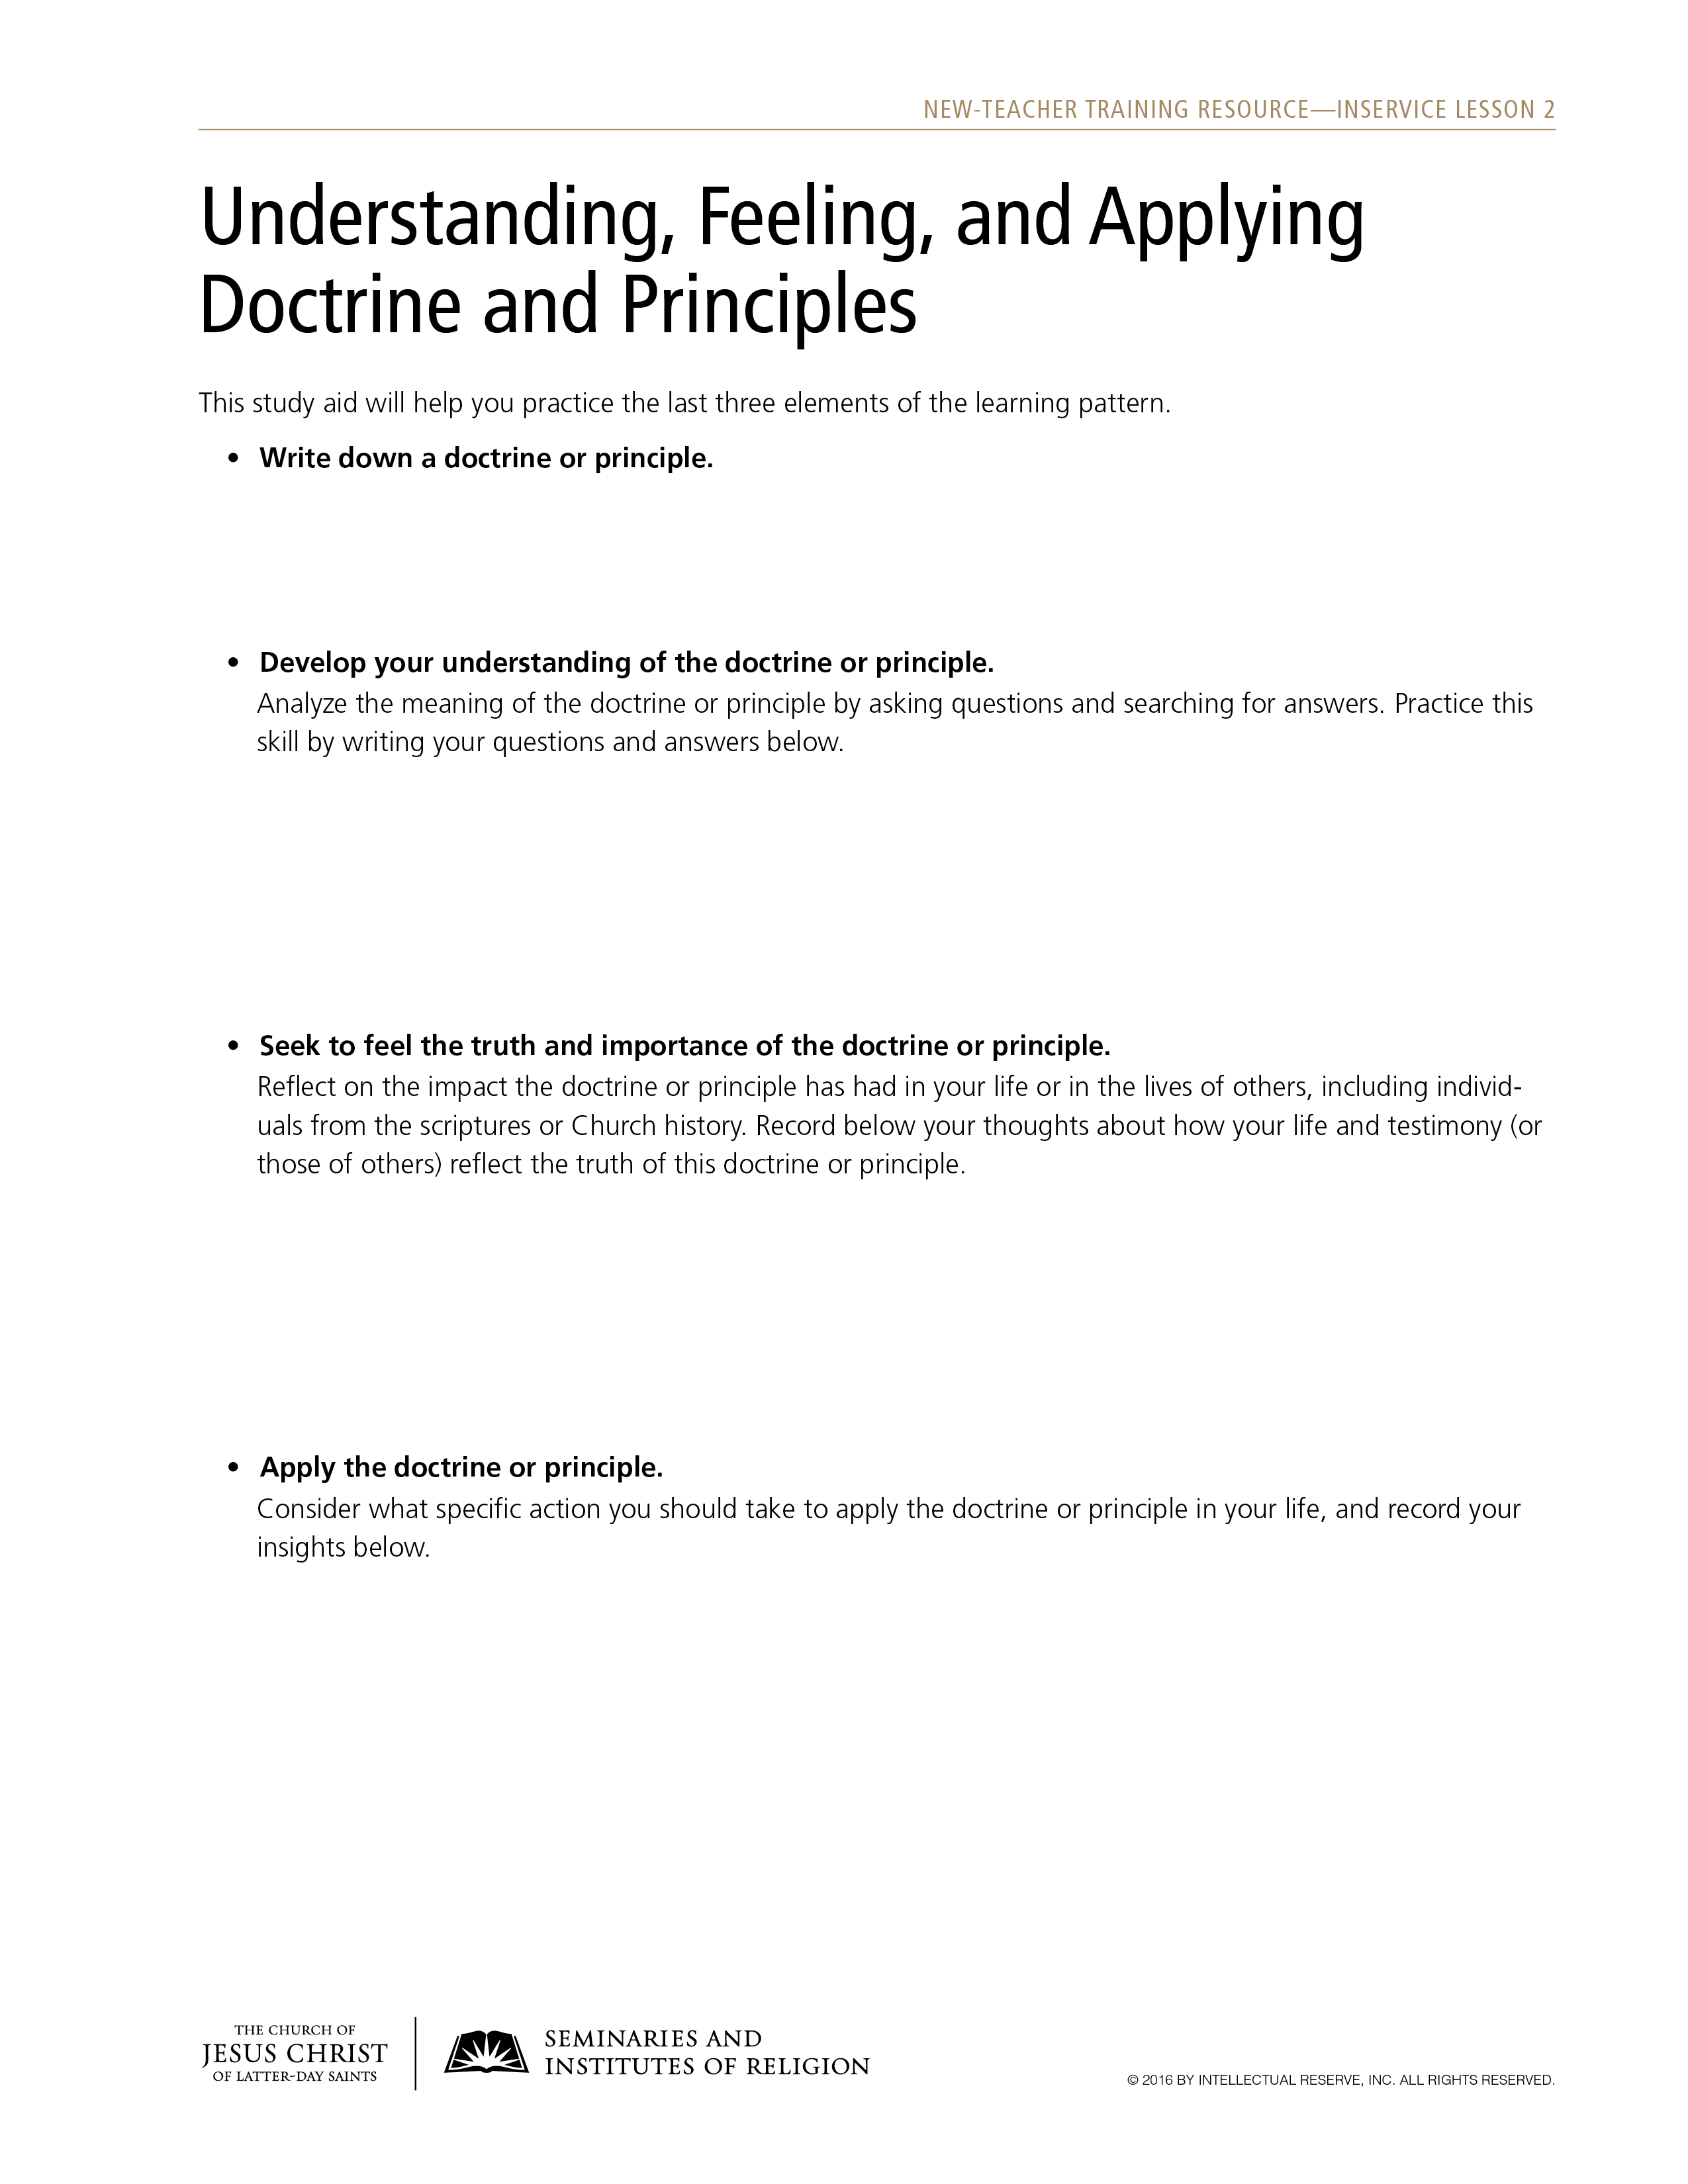 handout, Understanding, Feeling, and Applying Doctrine and Principles